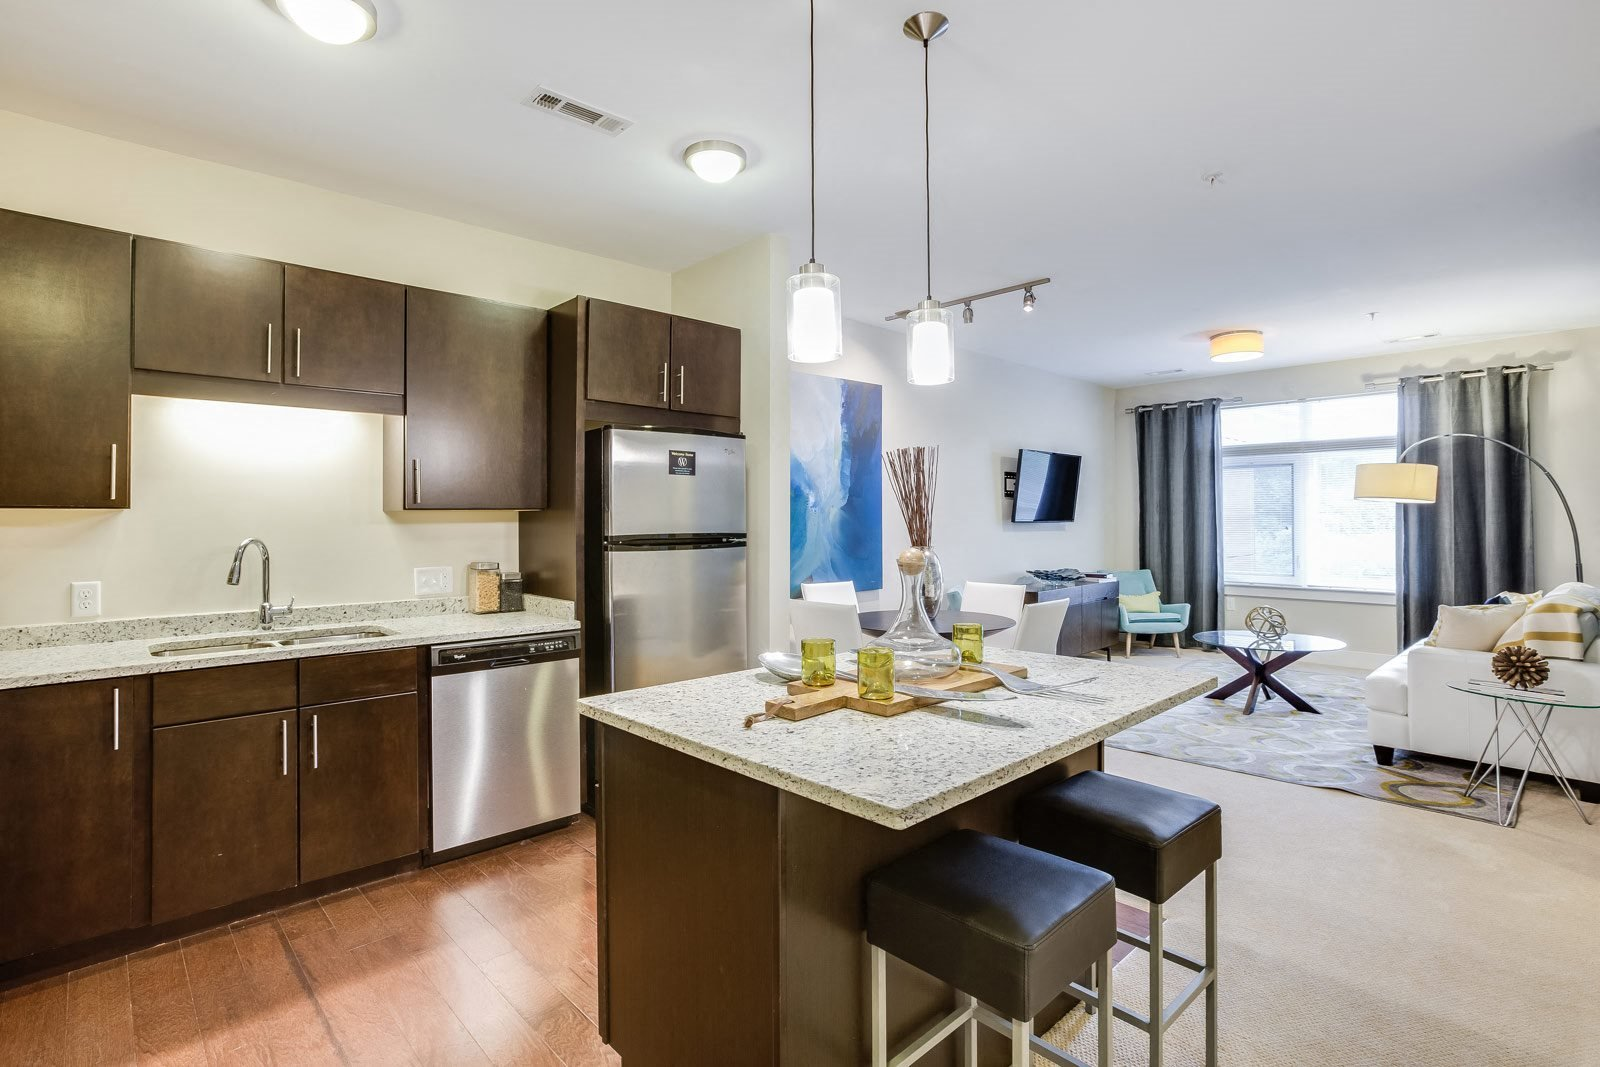 Kitchen Islands with Pendant Lighting and Breakfast Bars at Vox on Two, 223 Concord Turnpike, MA